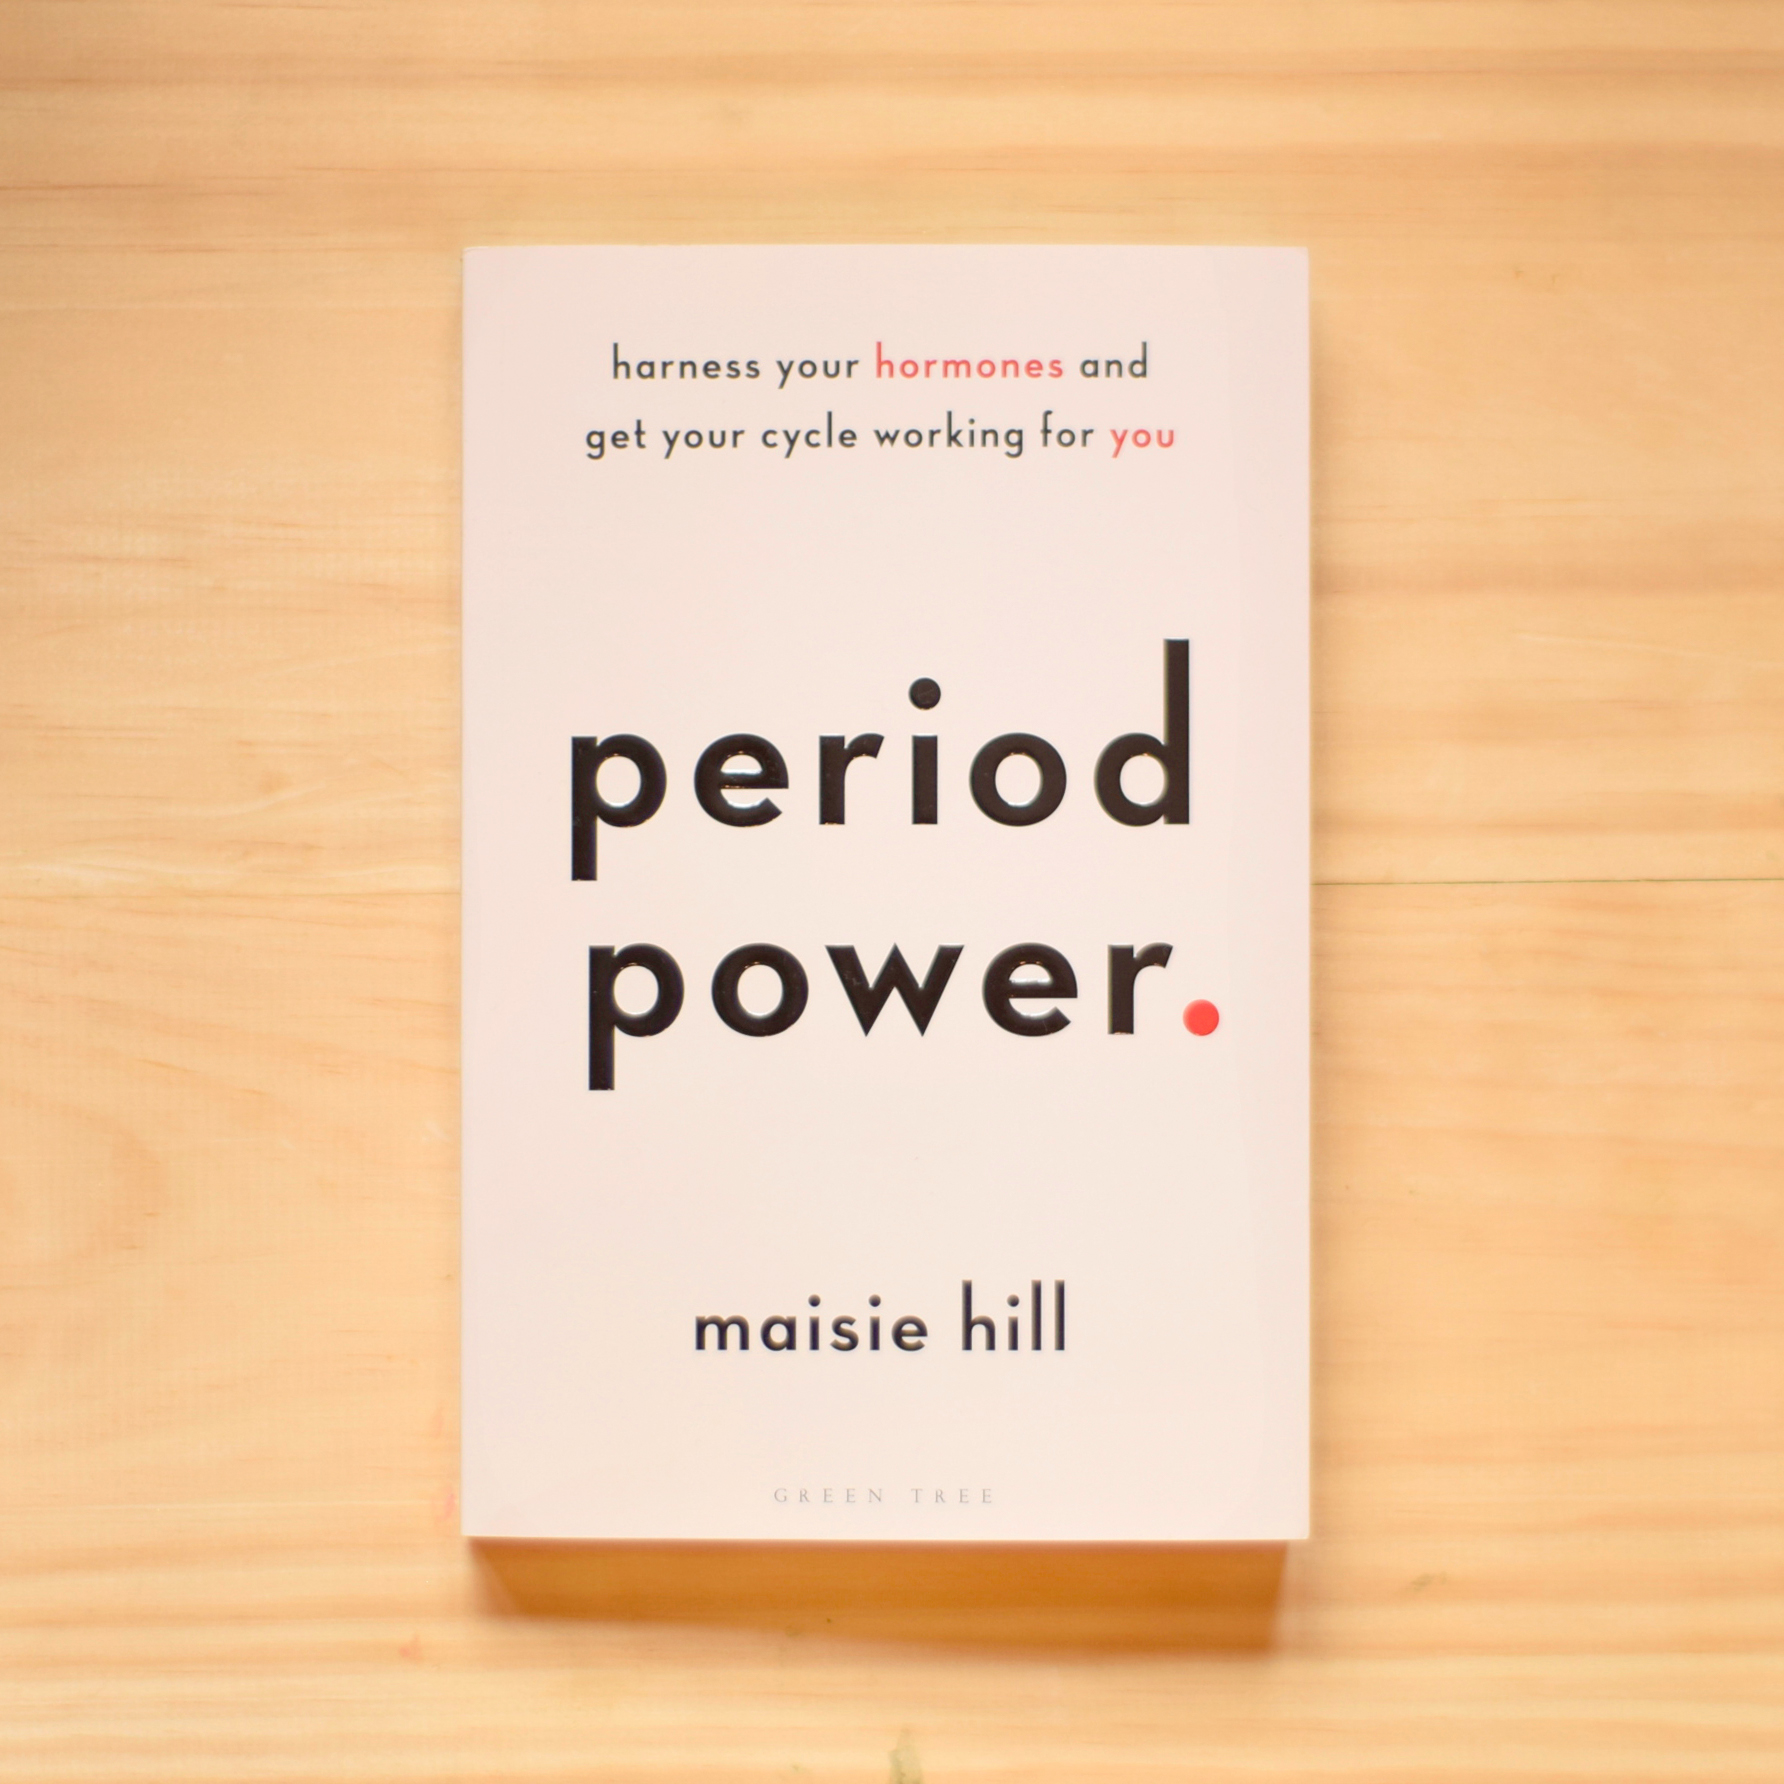 #2: Period Power - By Maisie HillMargate's very own Maisie Hill has provided women with a bible on understanding the menstrual cycle and how it affects daily life, the response to which has been unequivocally positive. It goes to show how much the world needed this, how mad it is that we're only just learning about this natural cycle, only just giving hormonal fluctuations the same importance we give to our sleep, diet, etc.